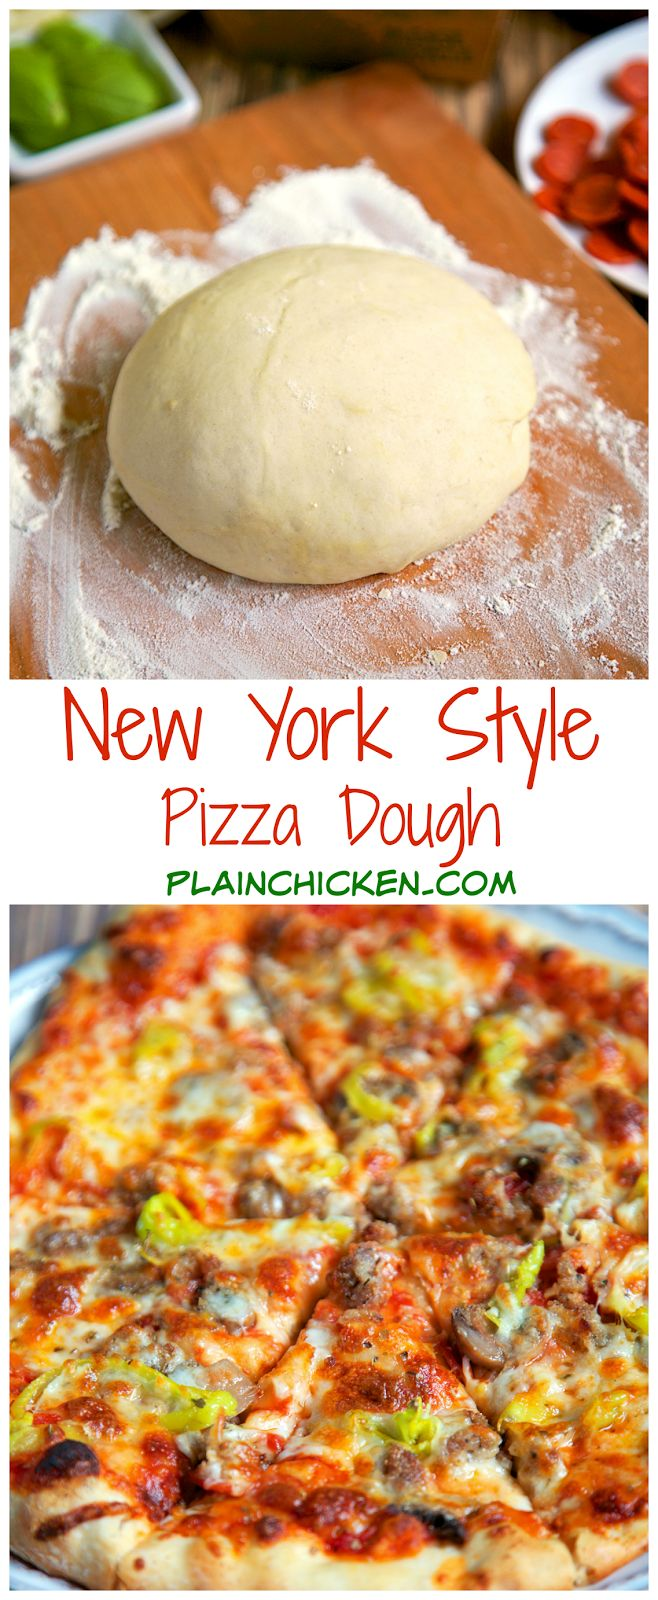 New York Style Pizza Dough Recipe ~ Only 4 ingredients to make the best pizza dough... This dough is so easy to work with! Make the dough and refrigerate until ready to use. Can make up to 3 or 4 days in advance - Great tips to make THE BEST pizza EVER! Better than any restaurant!